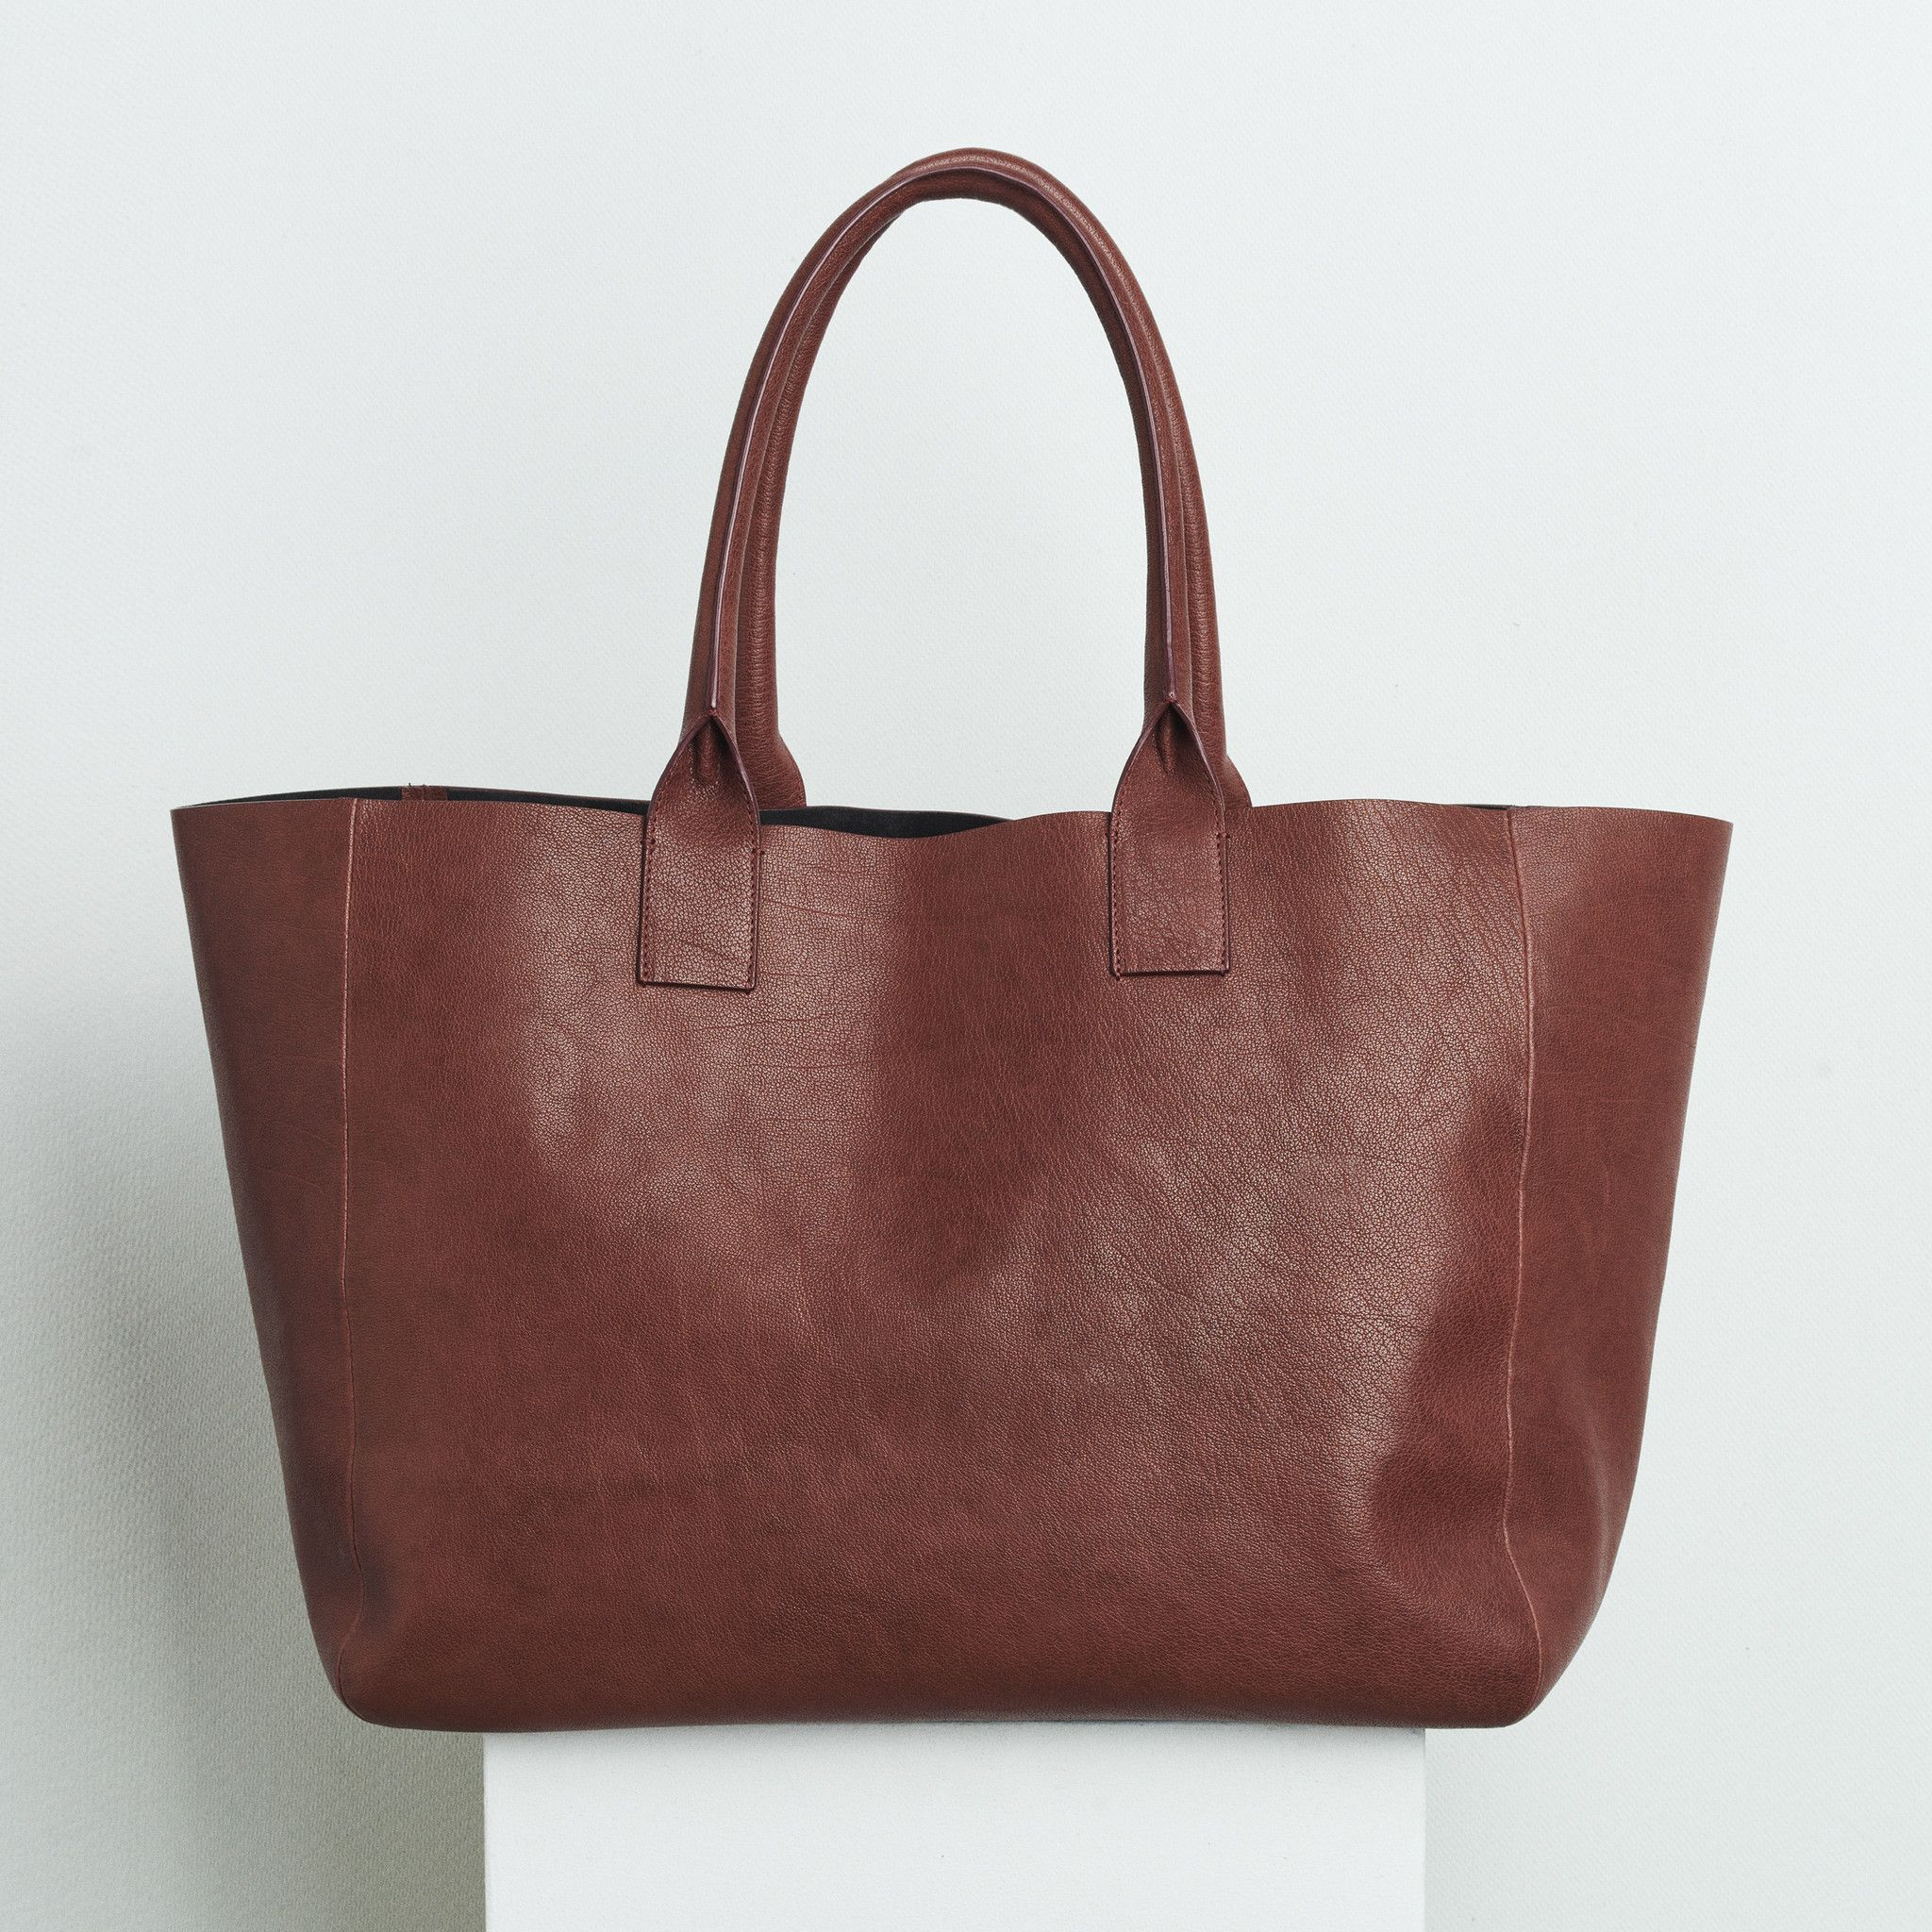 OVERSIZED SHOPPING BAG - RUST